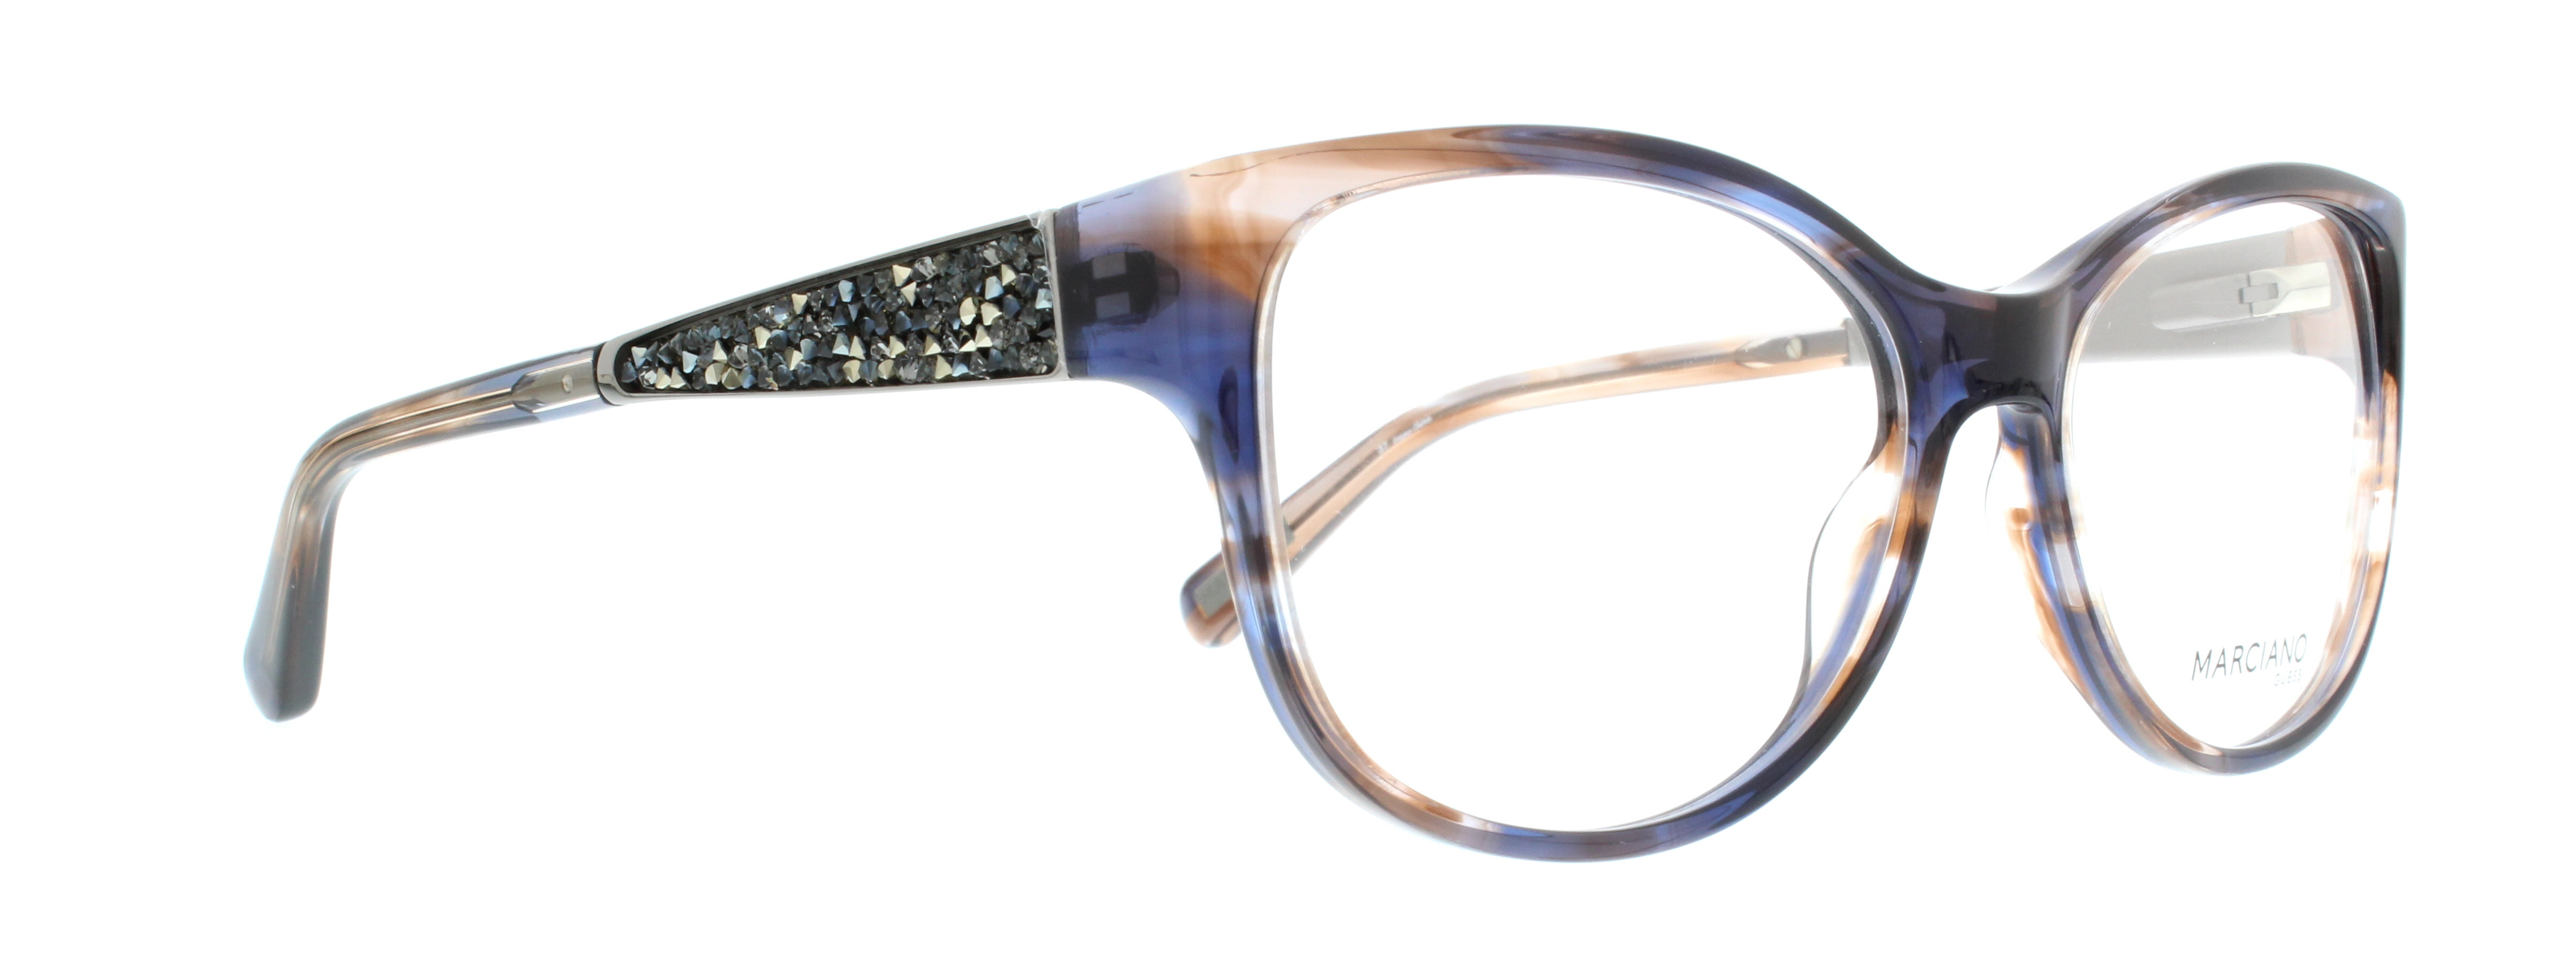 Designer Frames Outlet. Guess By Marciano GM 244 663090efcff36